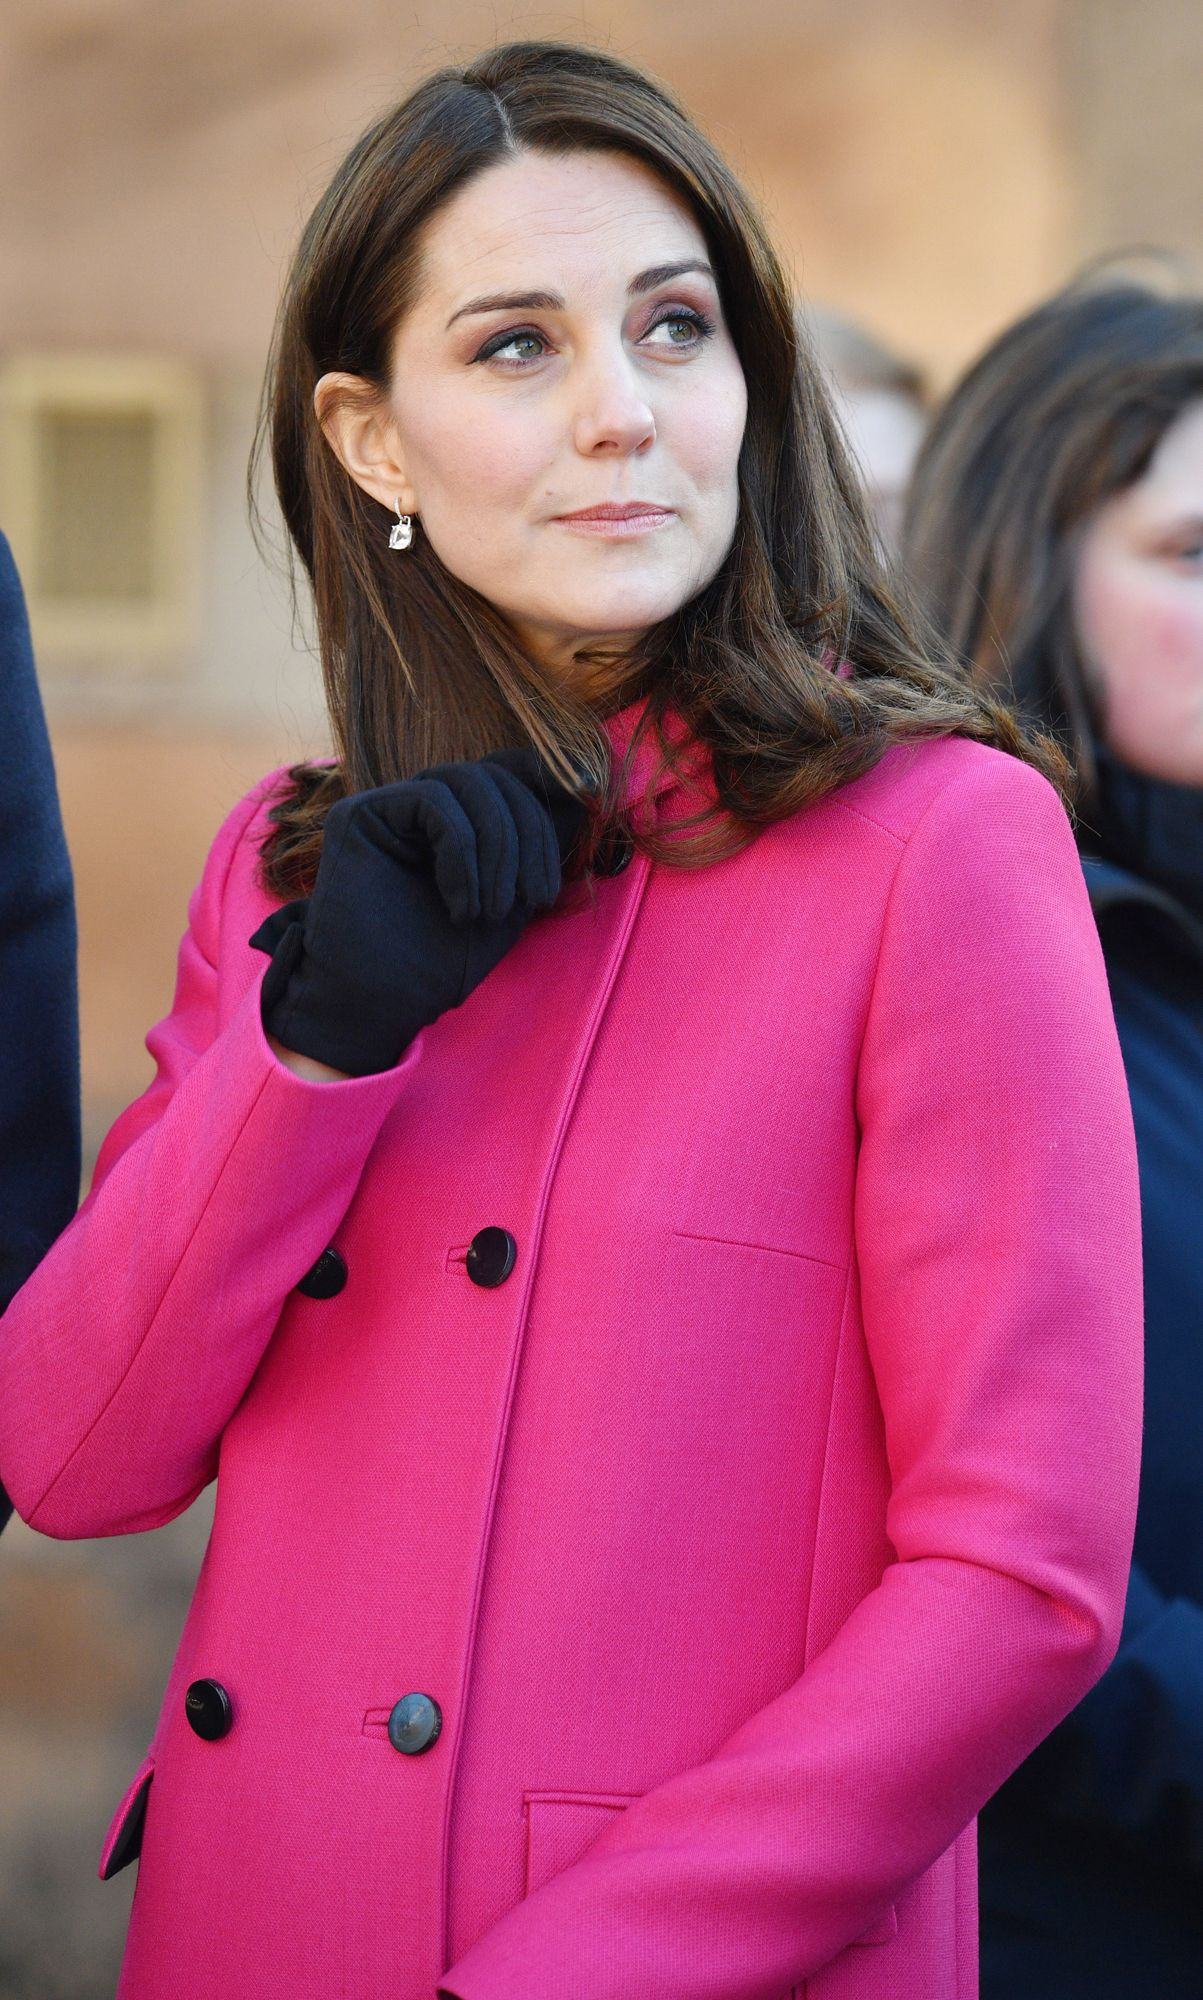 Kate Middleton Proved Her Mom Skills with This Quick-Thinking Move ...